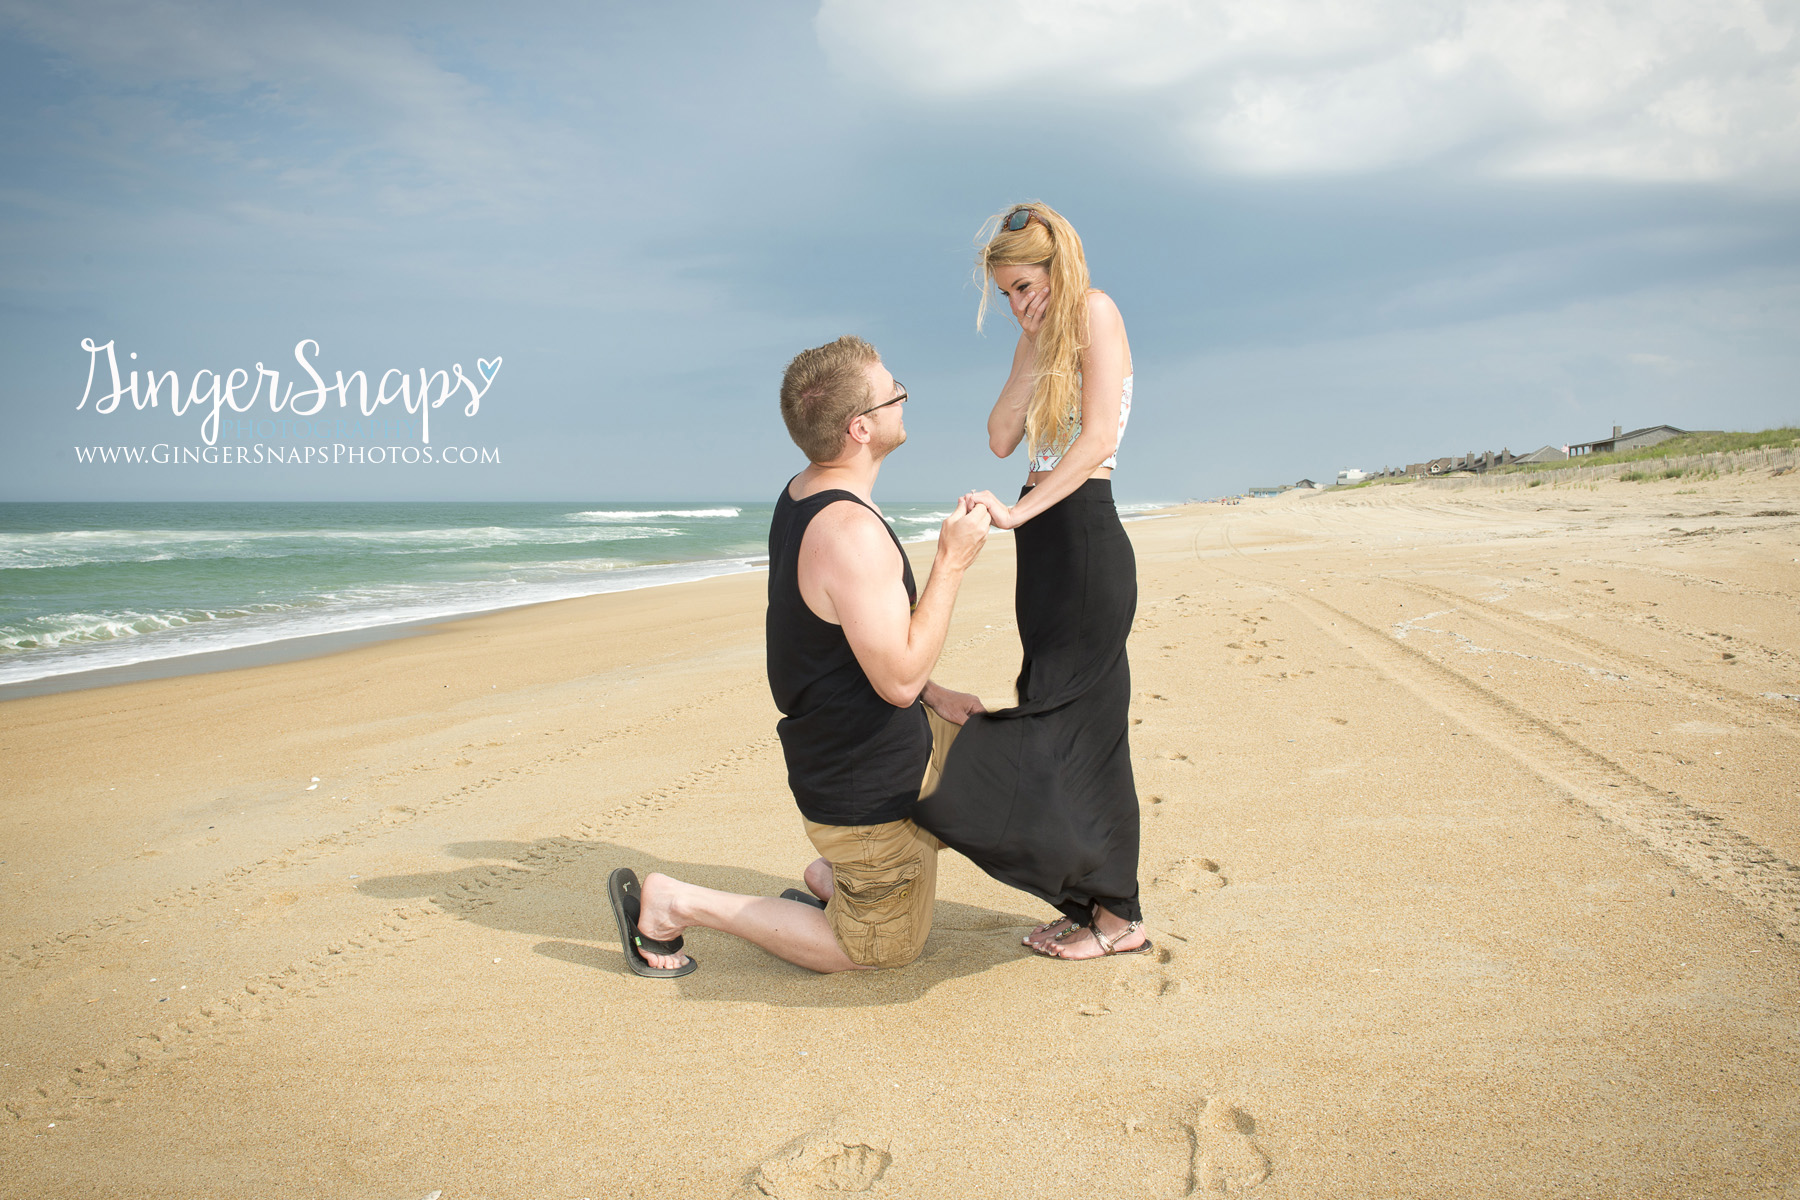 GingerSnaps Photography - 005.jpg